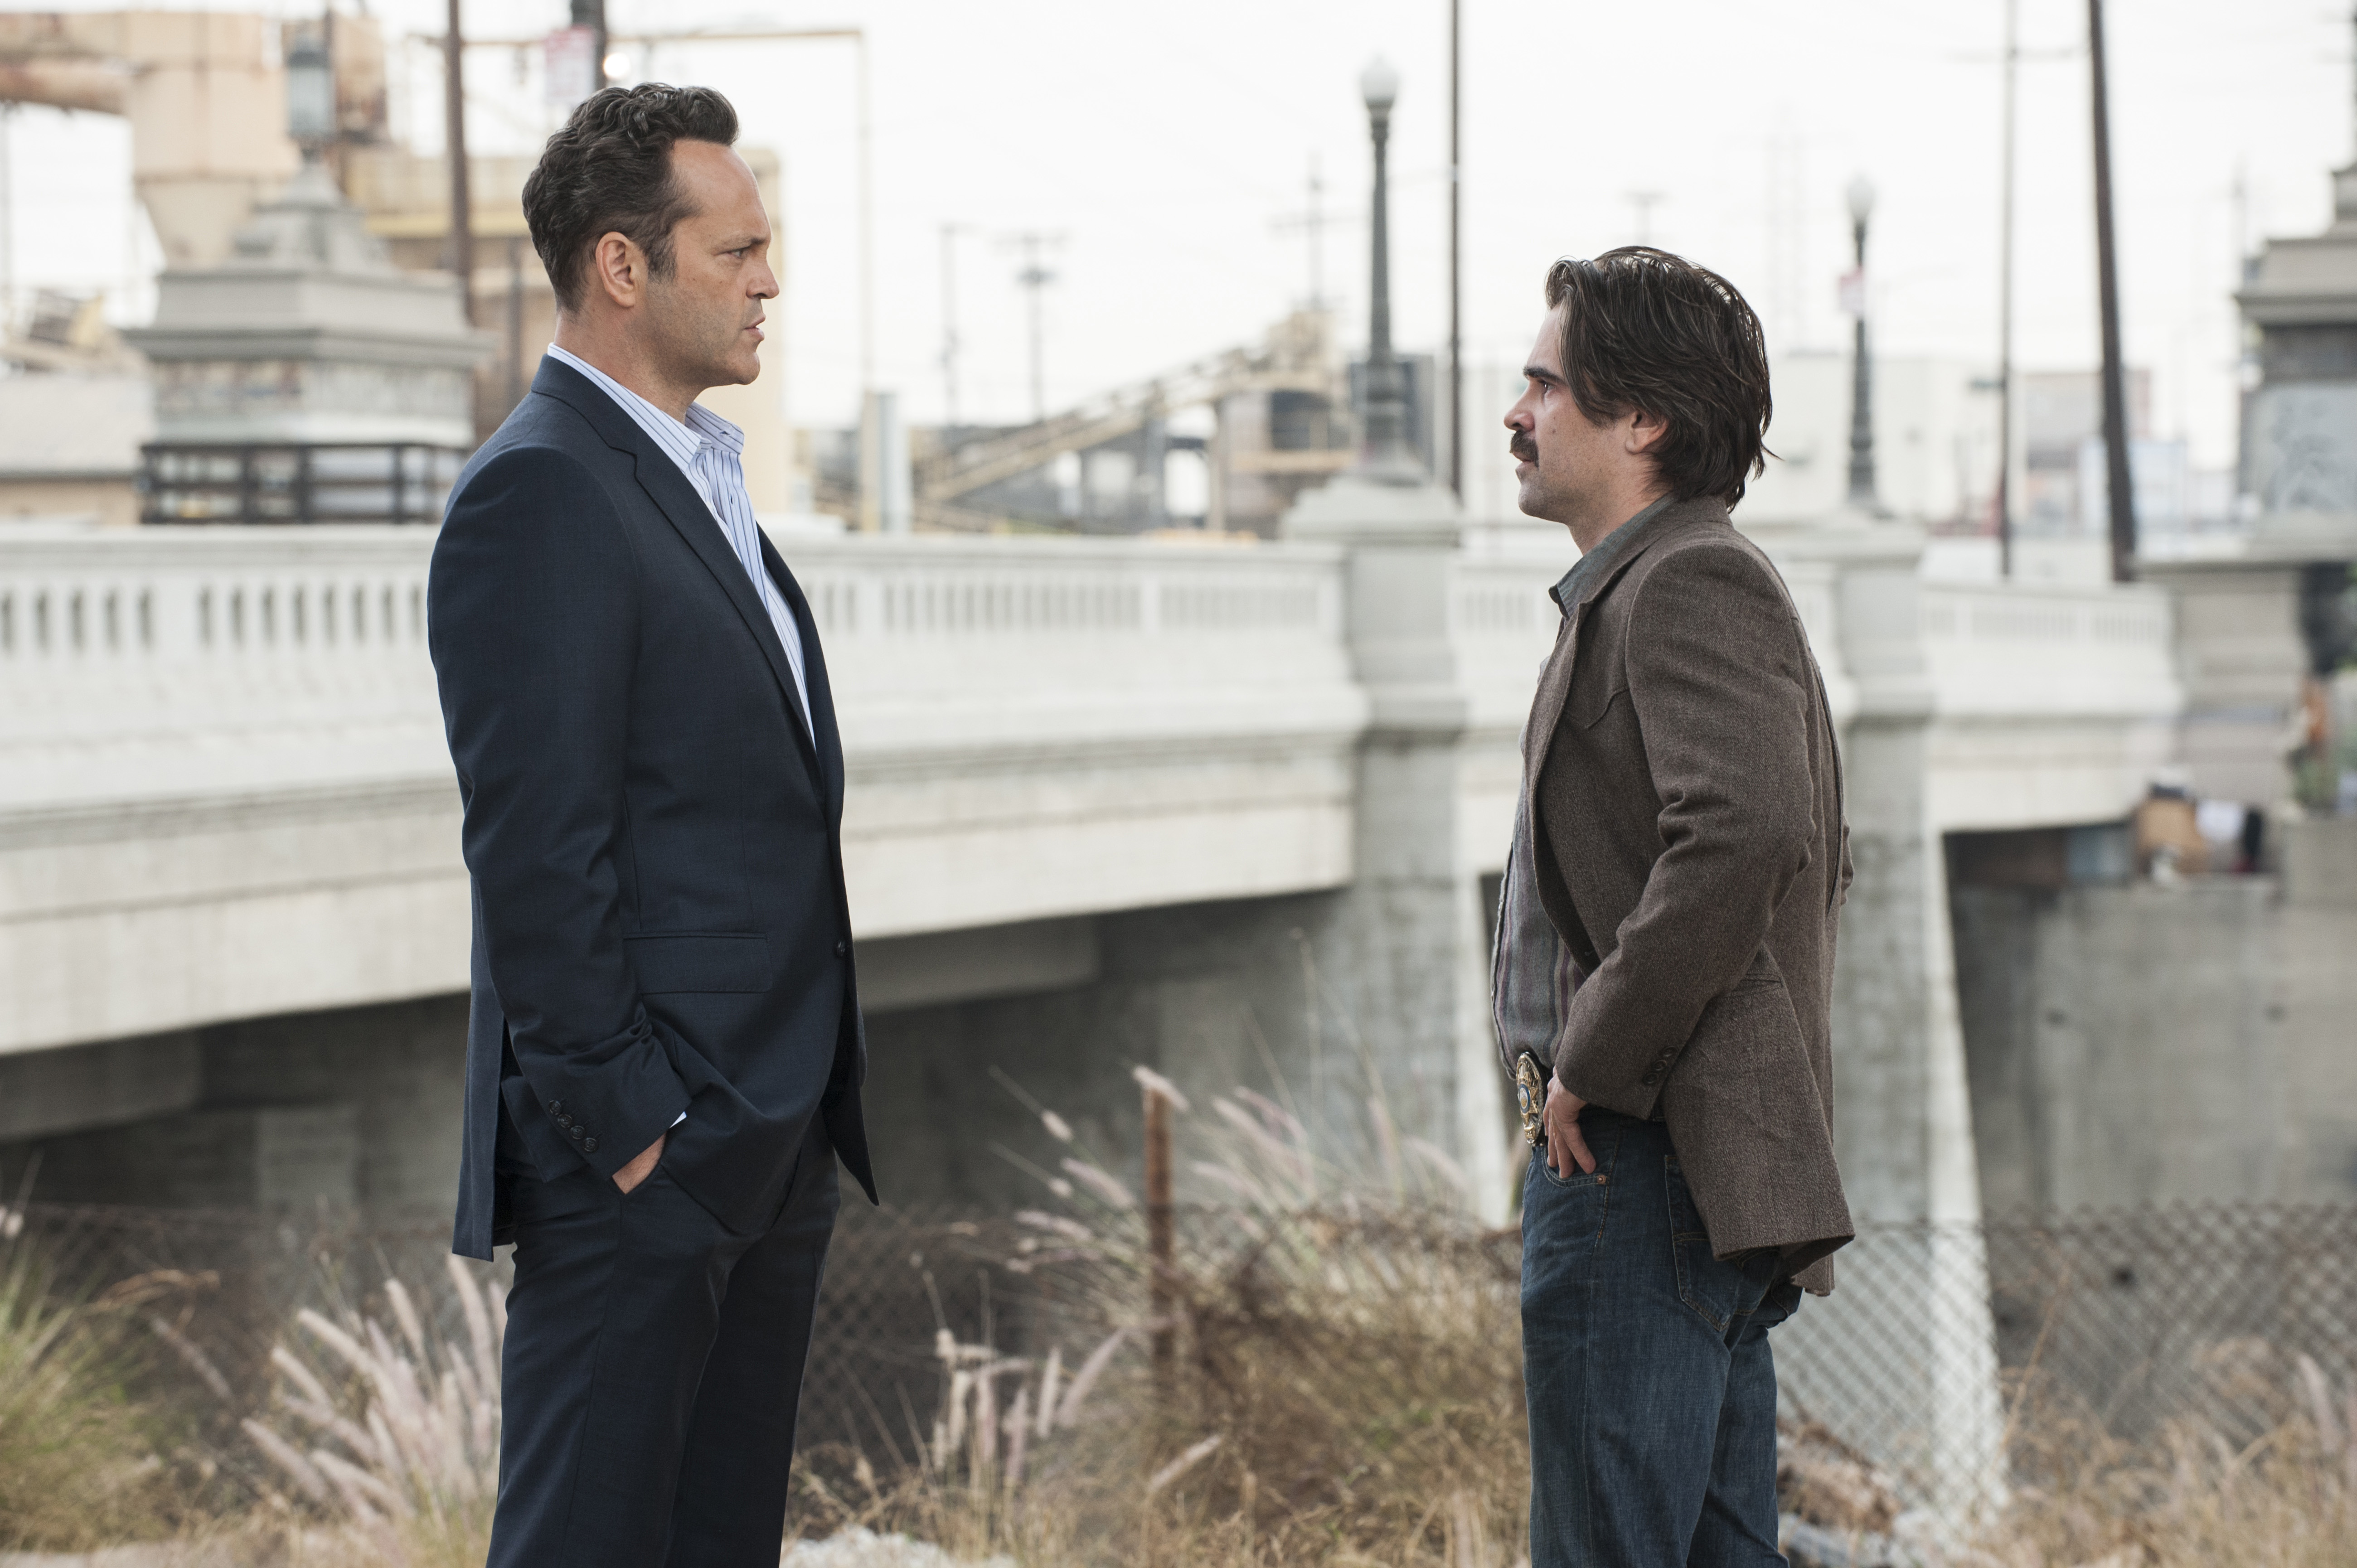 Frank (Vince Vaughn) and Ray (Colin Farrell) have a quick meeting to discuss who's in whose pocket.